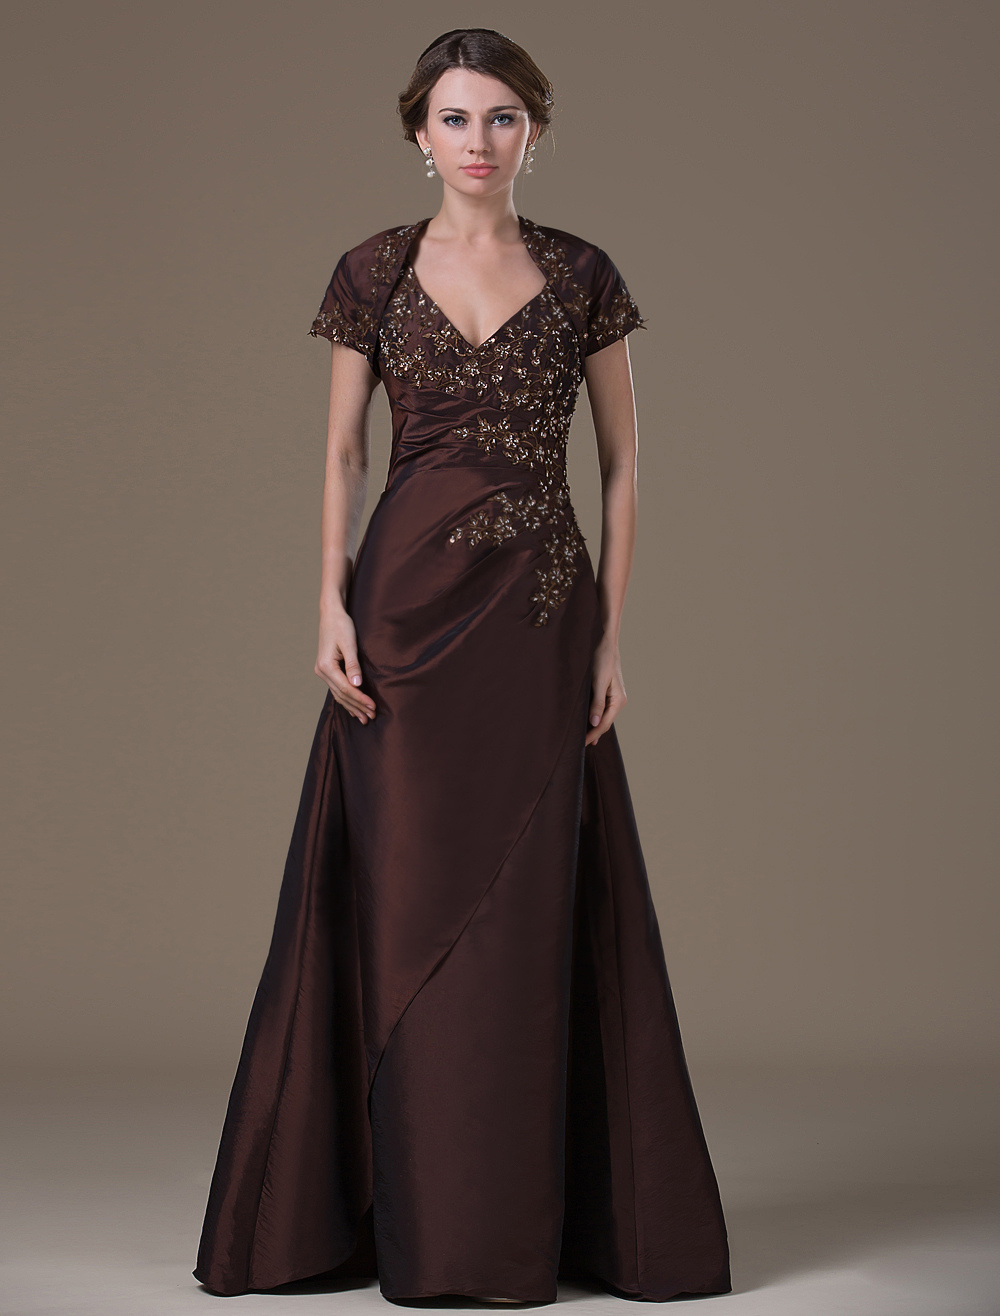 Chocolate A-line Backless Taffeta Fashion Dress For Mother of the Bride with V-Neck Beading Short Sleeves